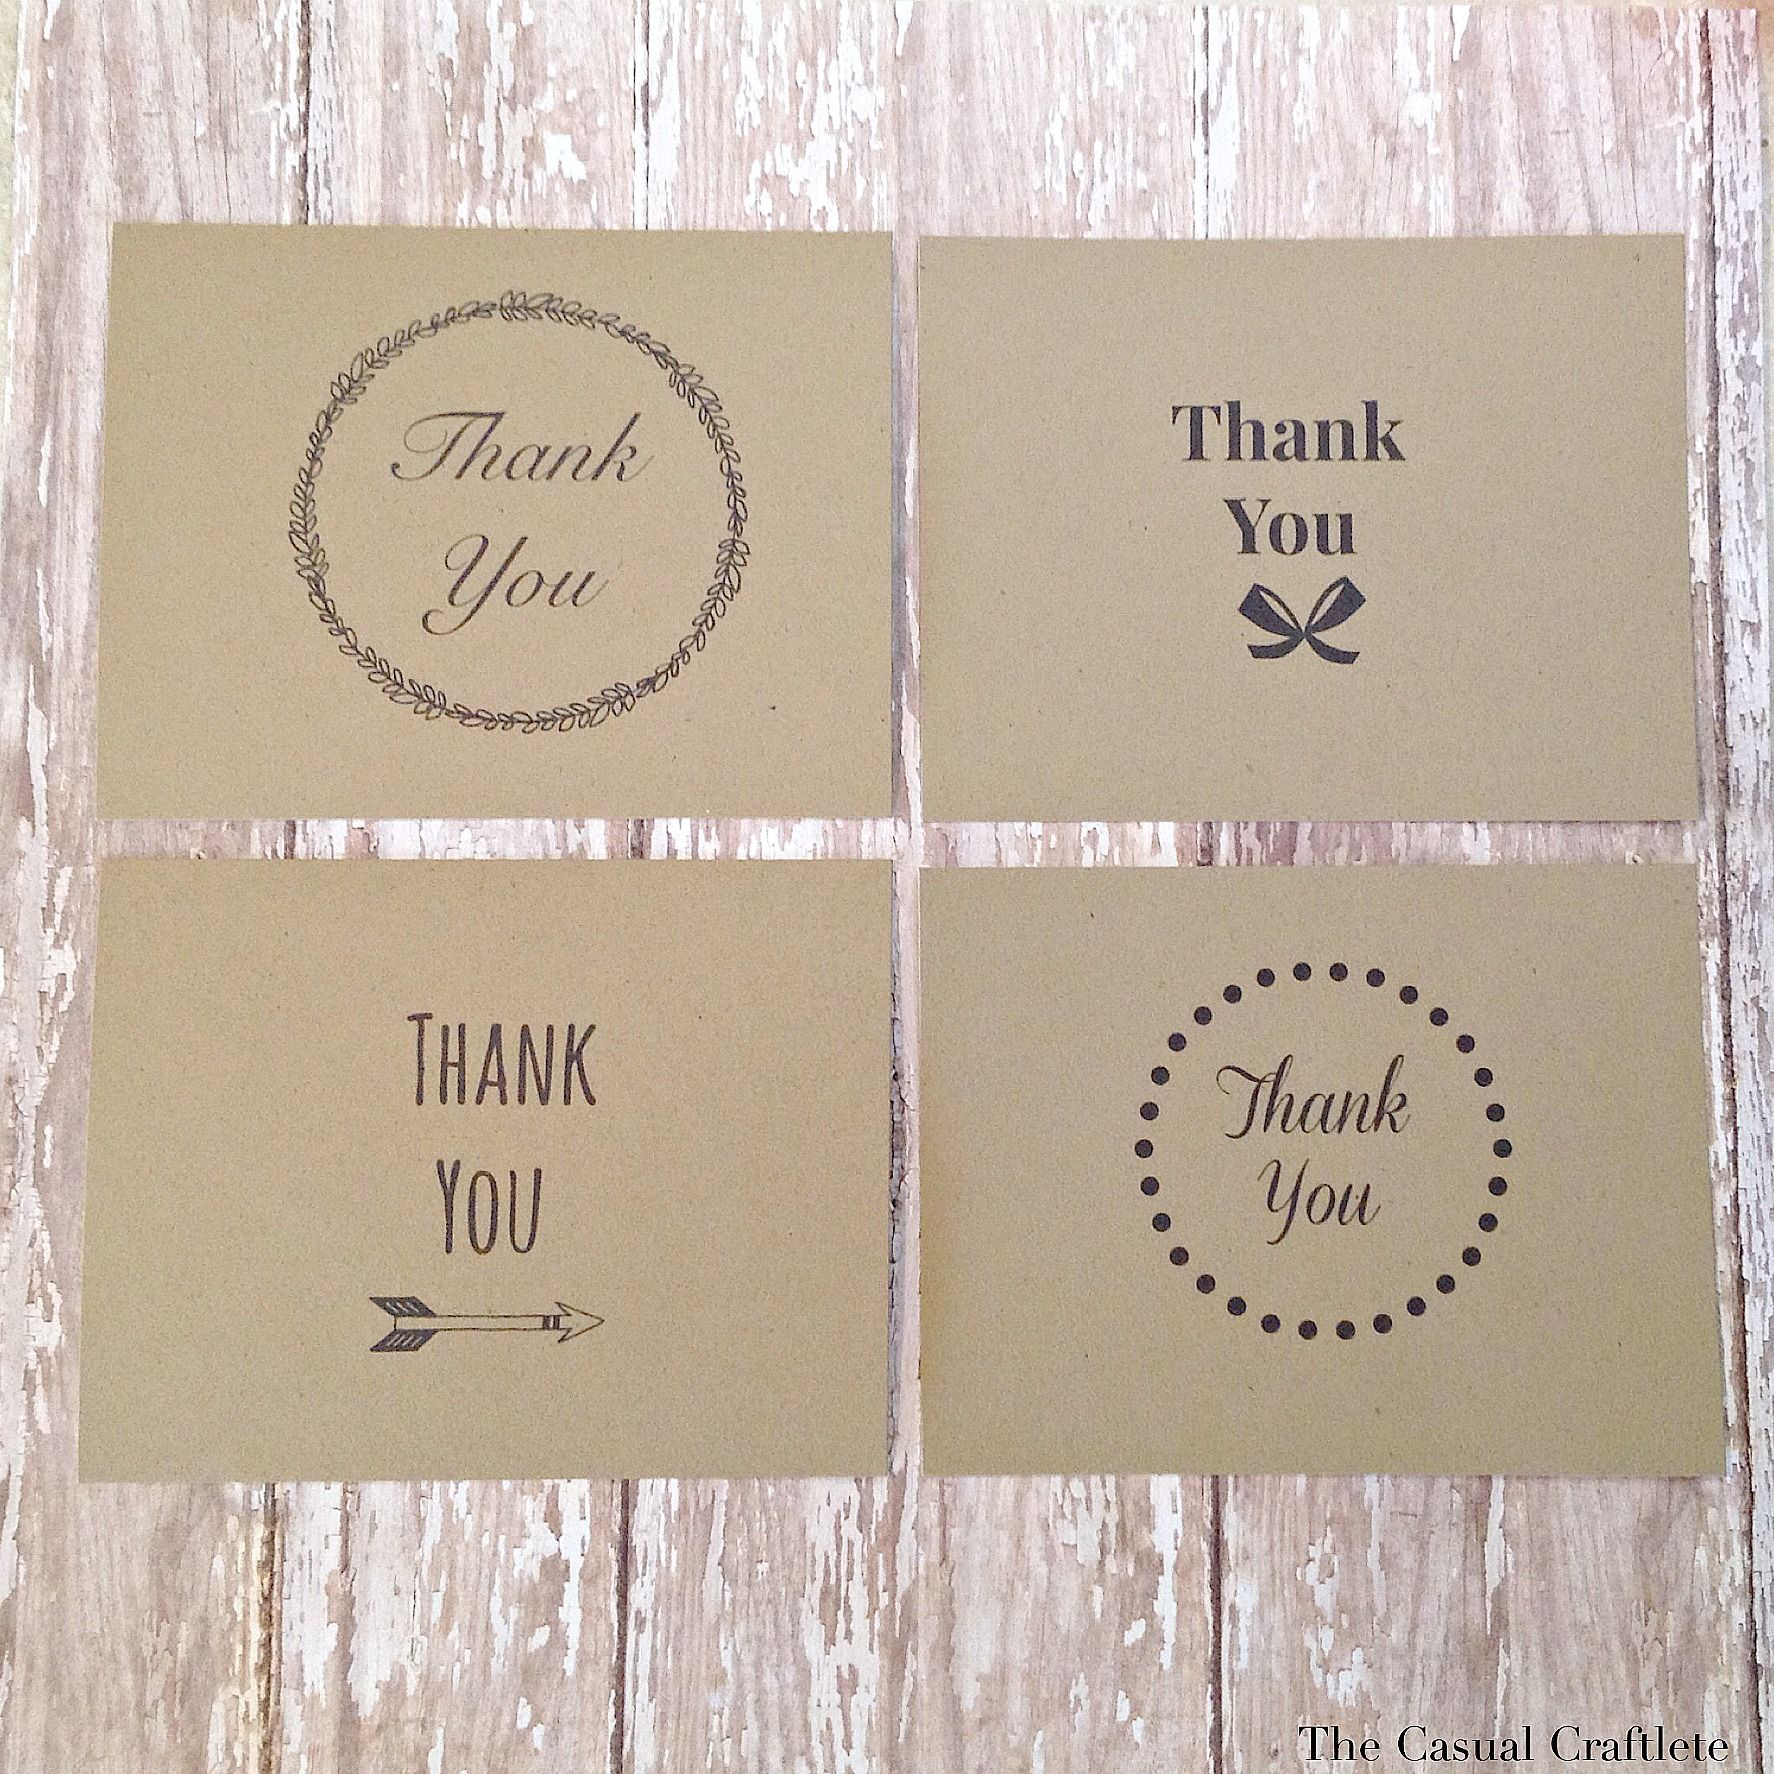 Desktop diy wedding thank you cards templates of mputer hd printable and